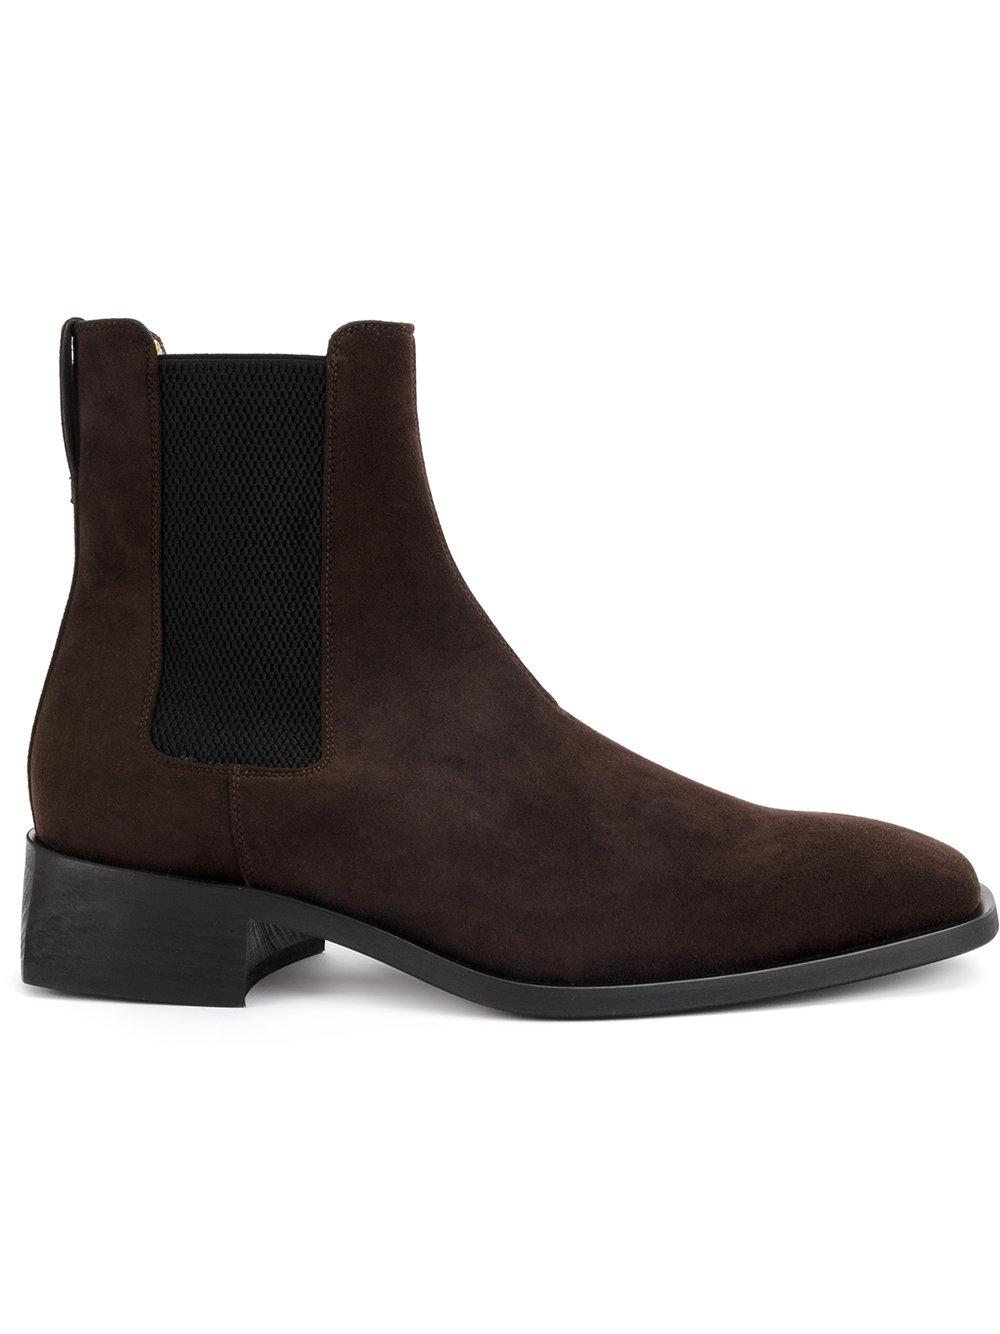 Stella Mccartney Chelsea Boots - Brown